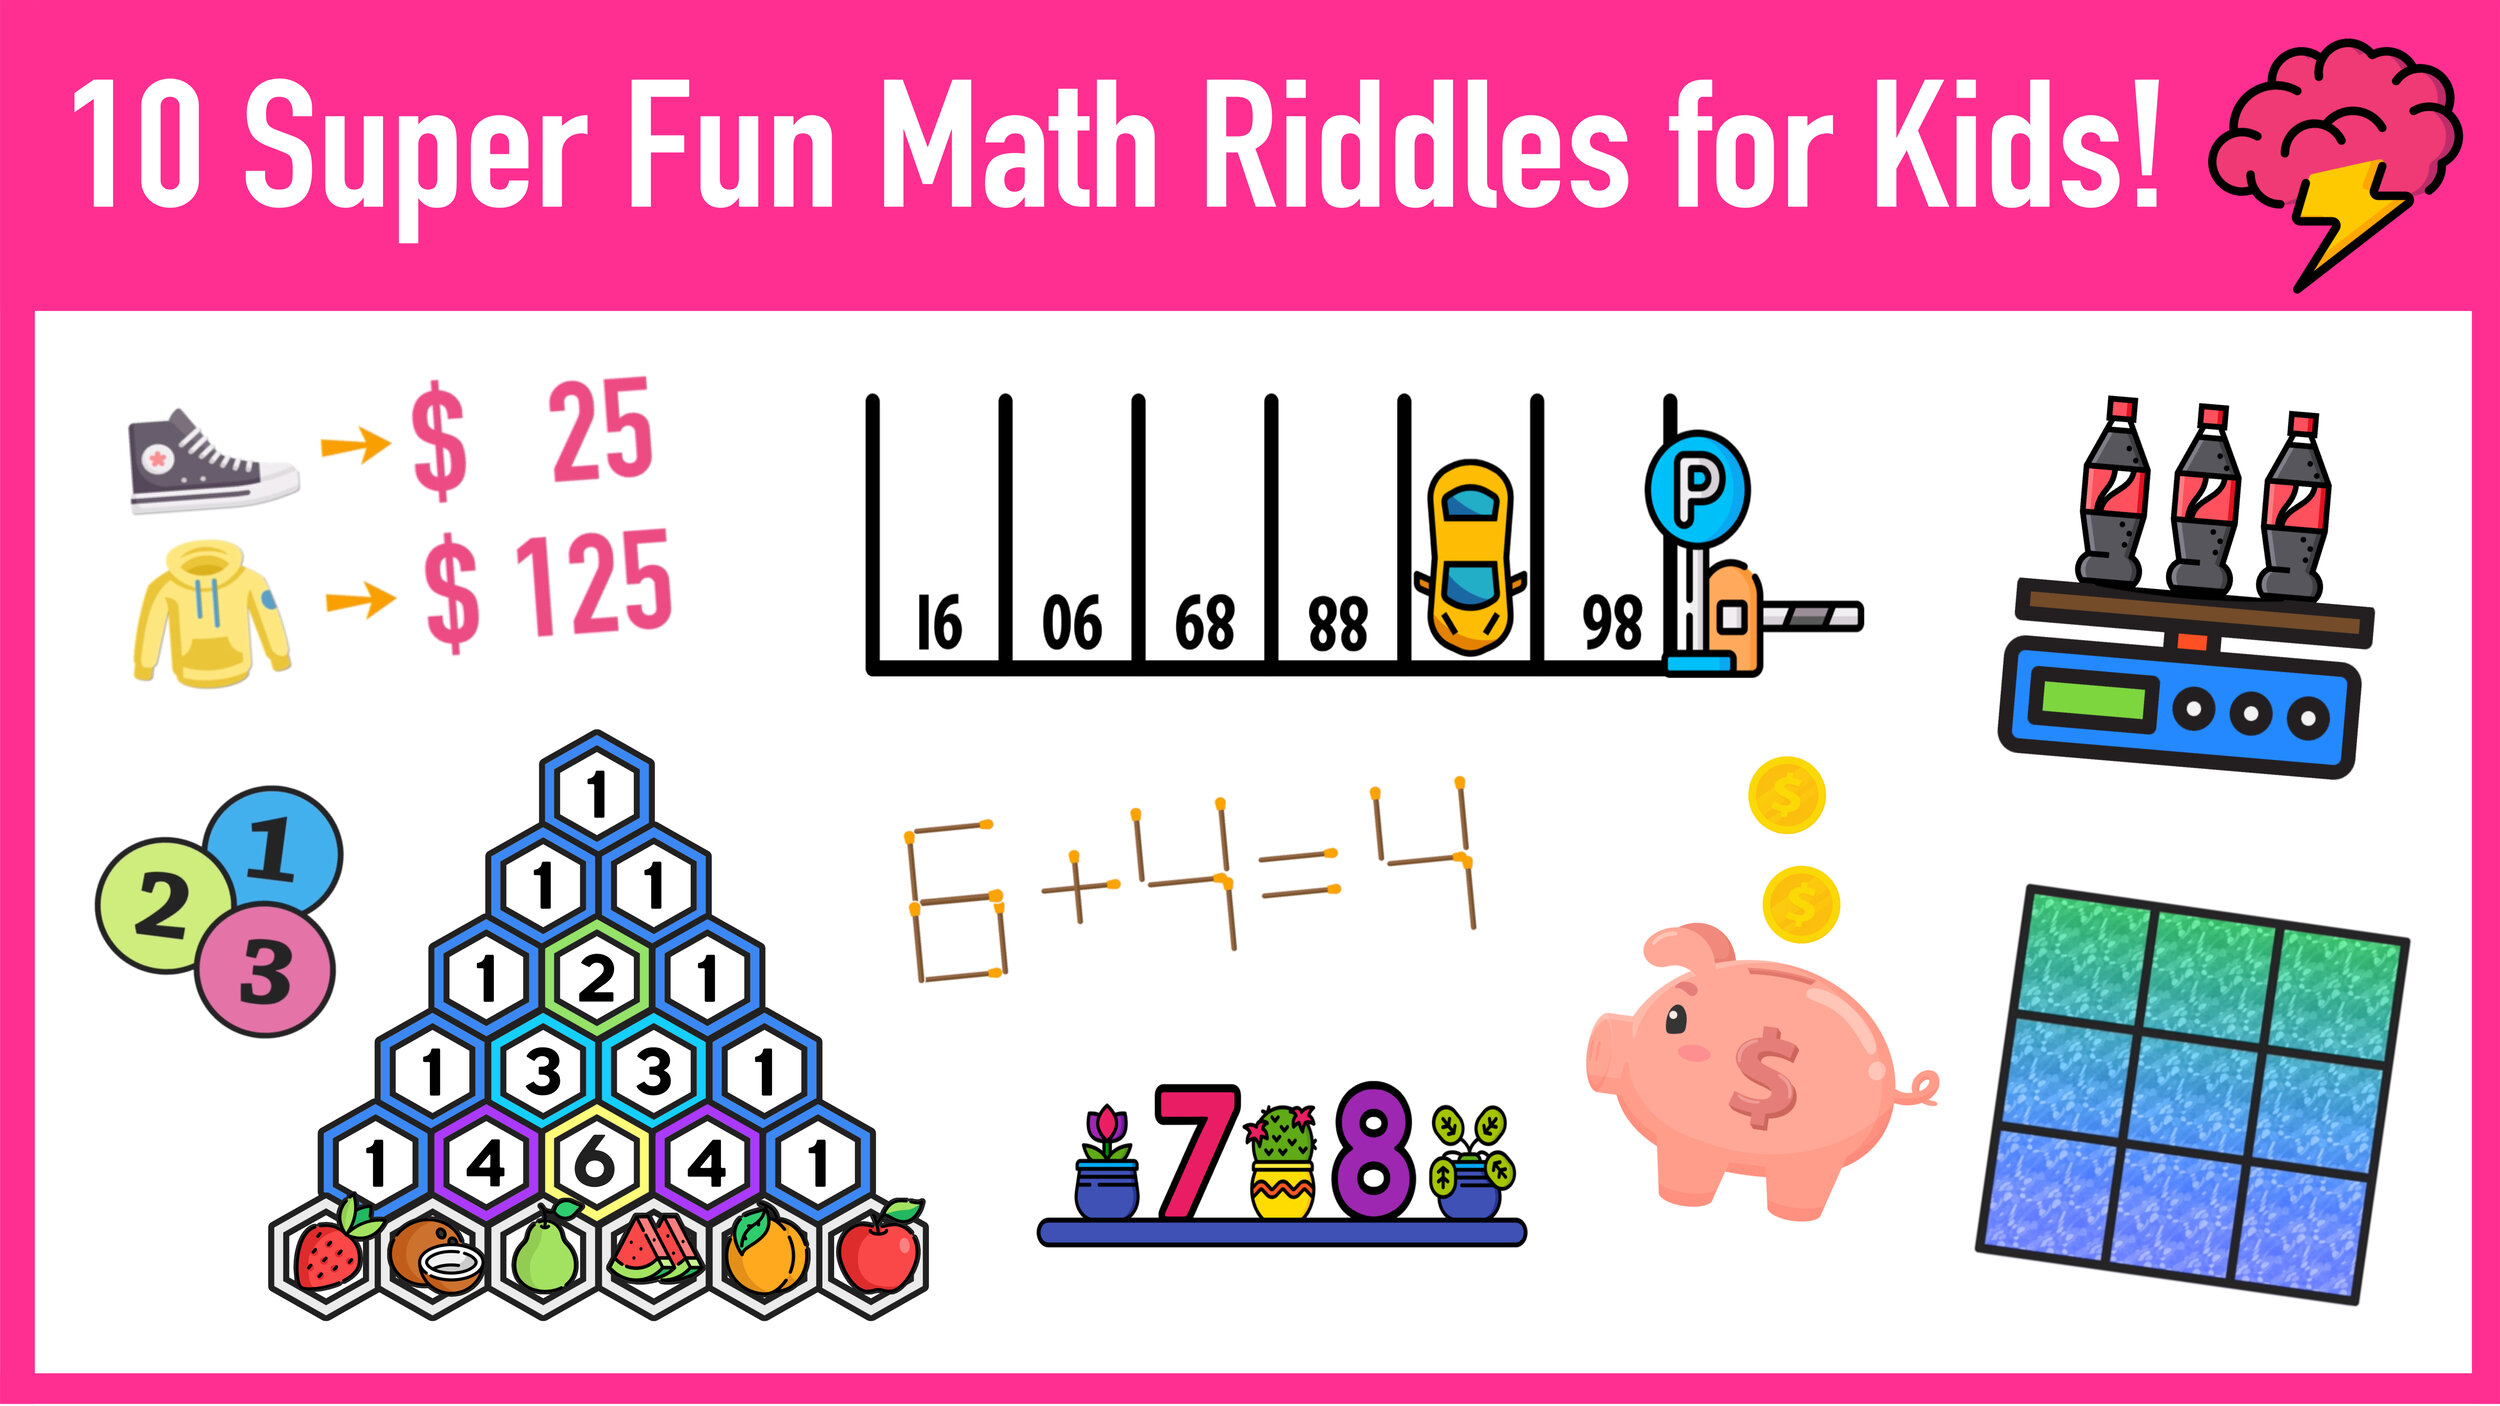 10 Super Fun Math Riddles For Kids Ages 10+ (with Answers) — Mashup Math